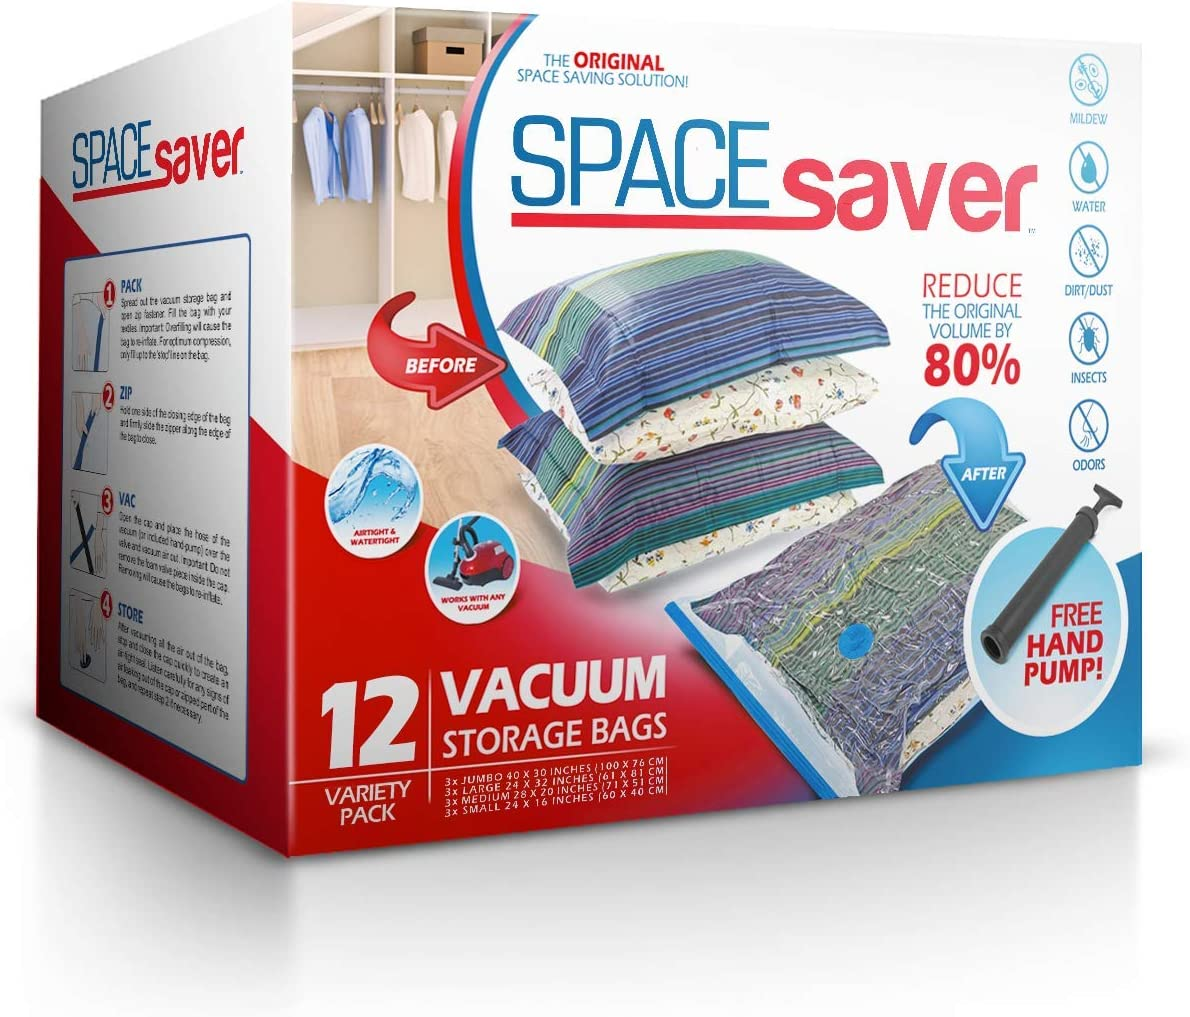 Spacesaver Premium Vacuum Storage Bags (3 x Small, 3 x Medium, 3 x Large, 3 x Jumbo) (80% More Storage Than Leading Brands) Free Hand Pump for Travel! (Variety 12 Pack): Home & Kitchen